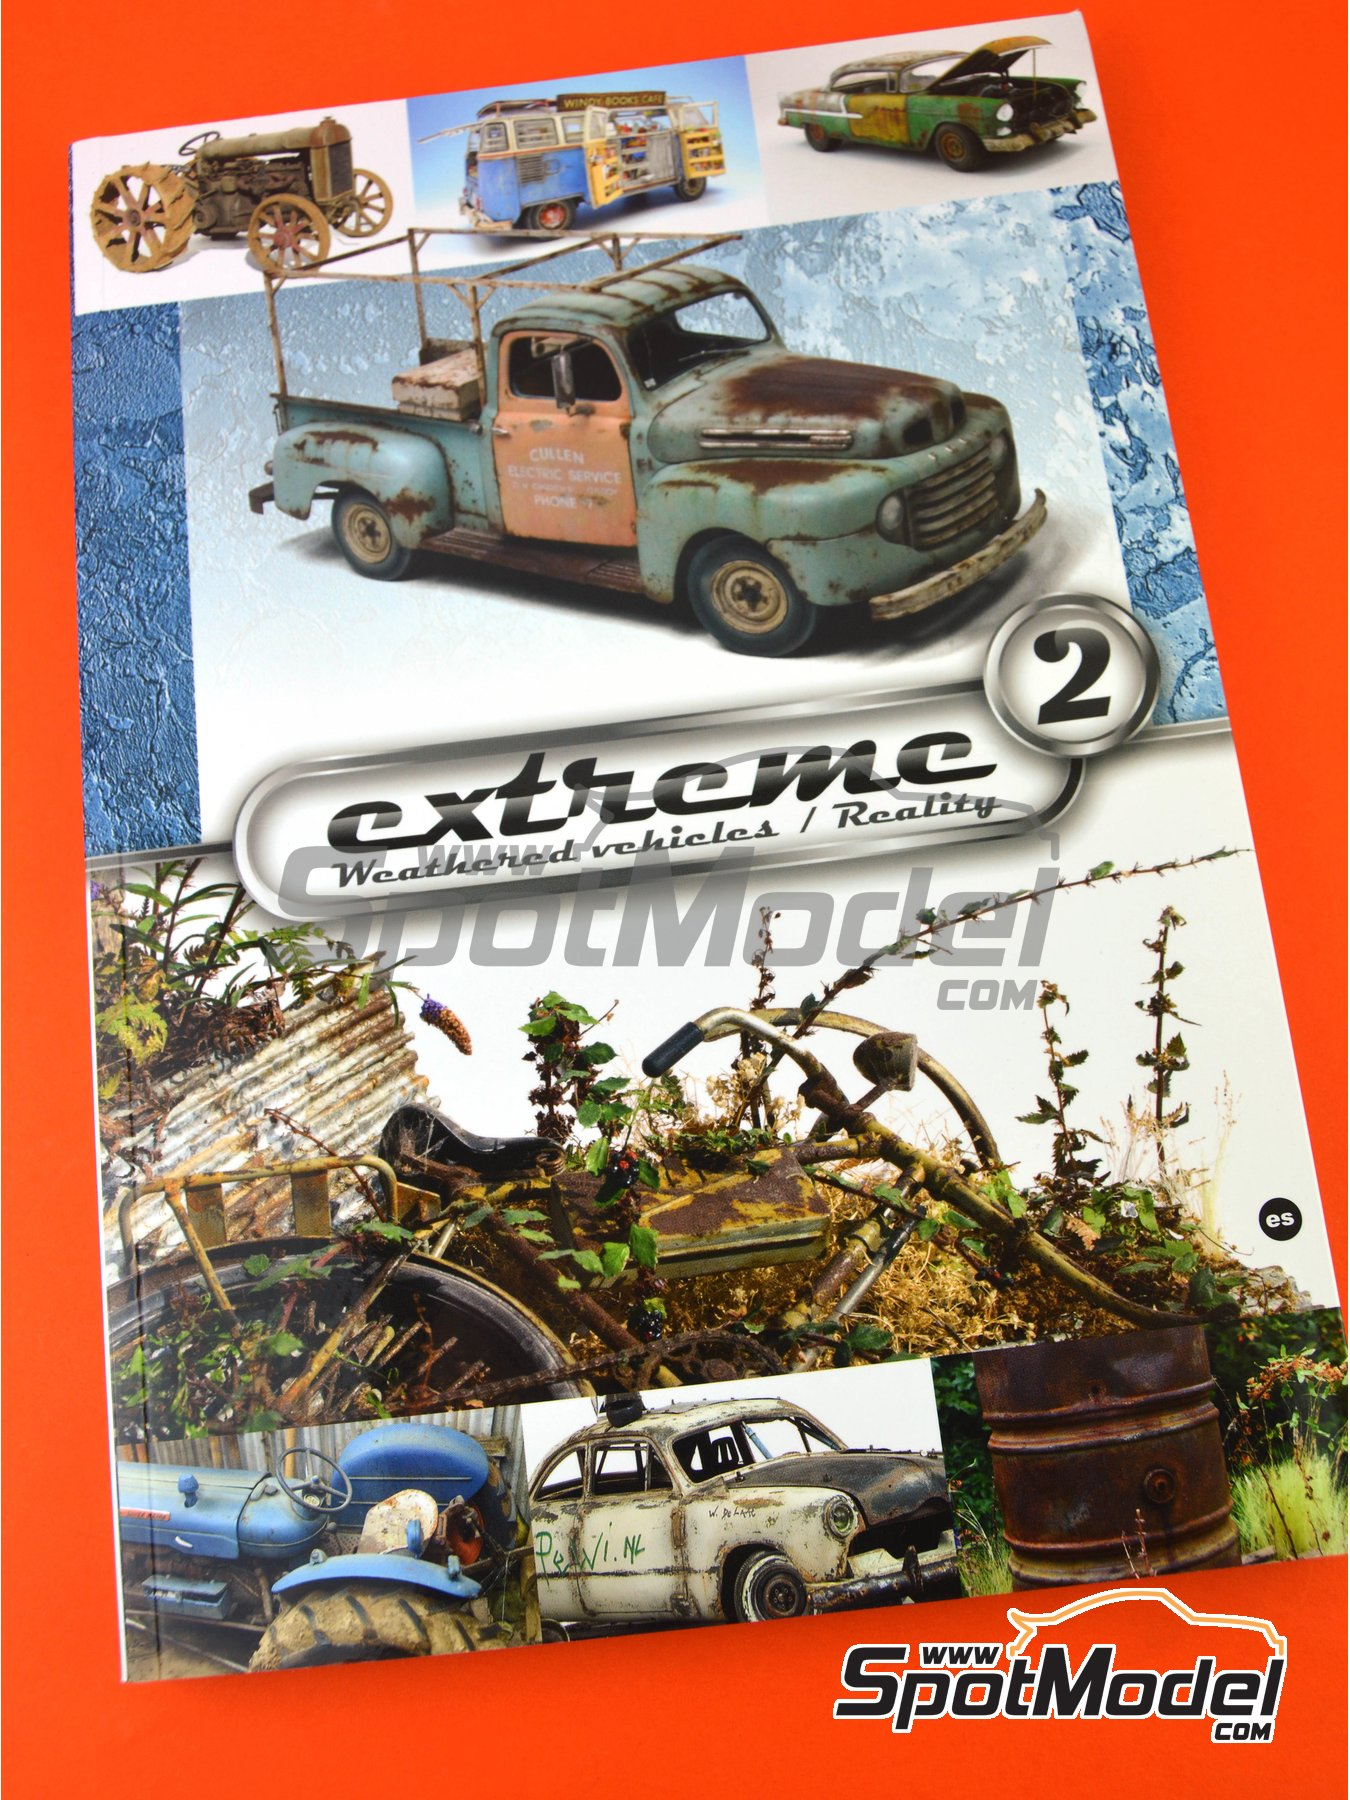 Extreme2 - Extreme Weathered vehicles + Extreme reality: Spanish language | Book manufactured by AK Interactive (ref.AK-504) image